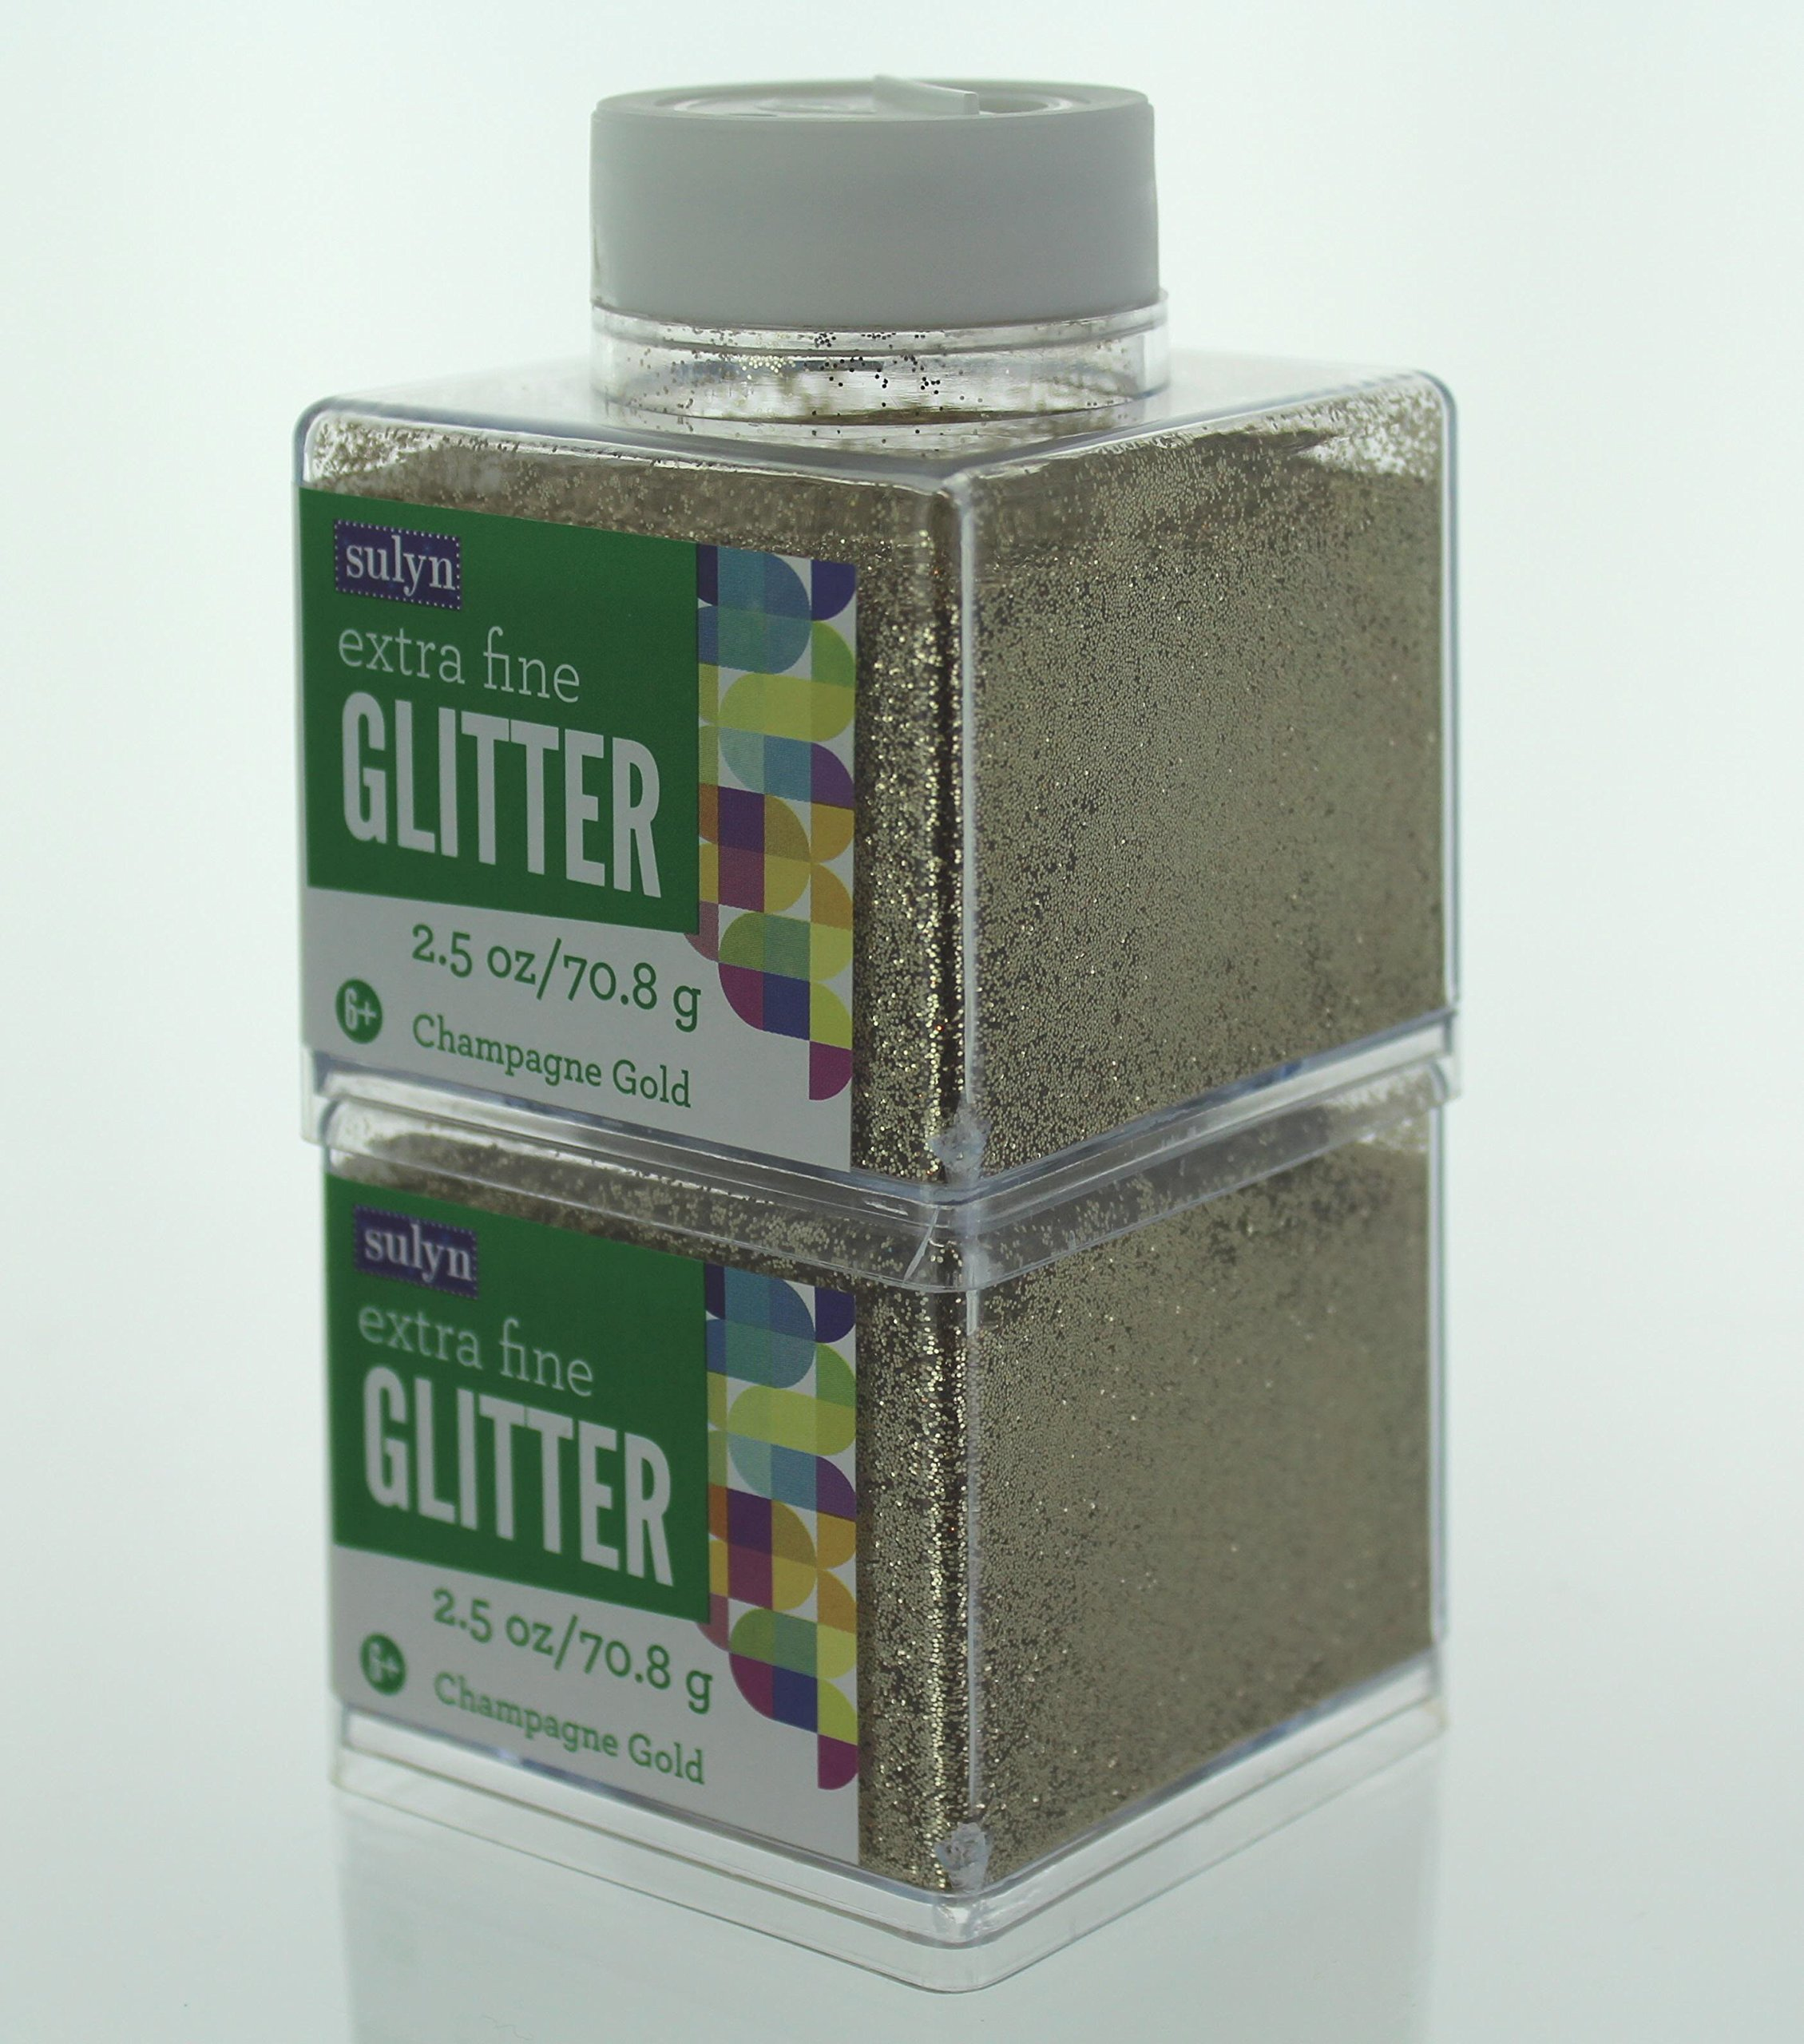 (Pack of 2) Advantus Corp Glitter 2.5 oz Stack-able Container (Champagne Gold - Extra Fine)